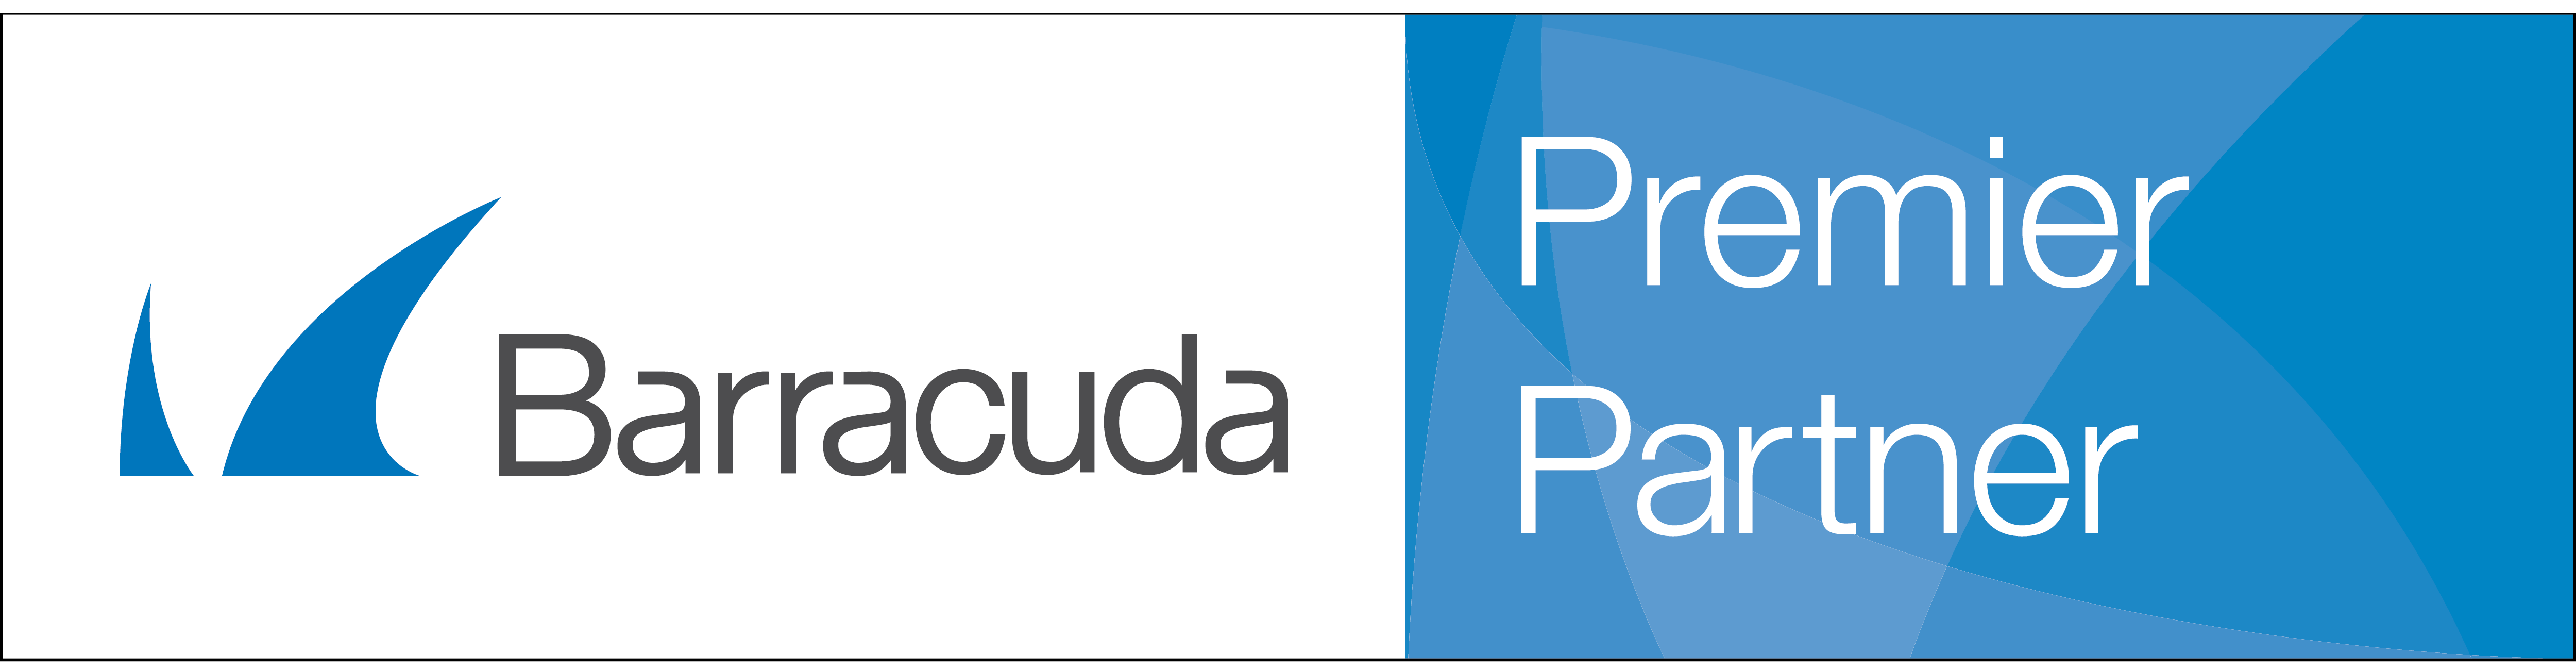 barracuda-premier-partner